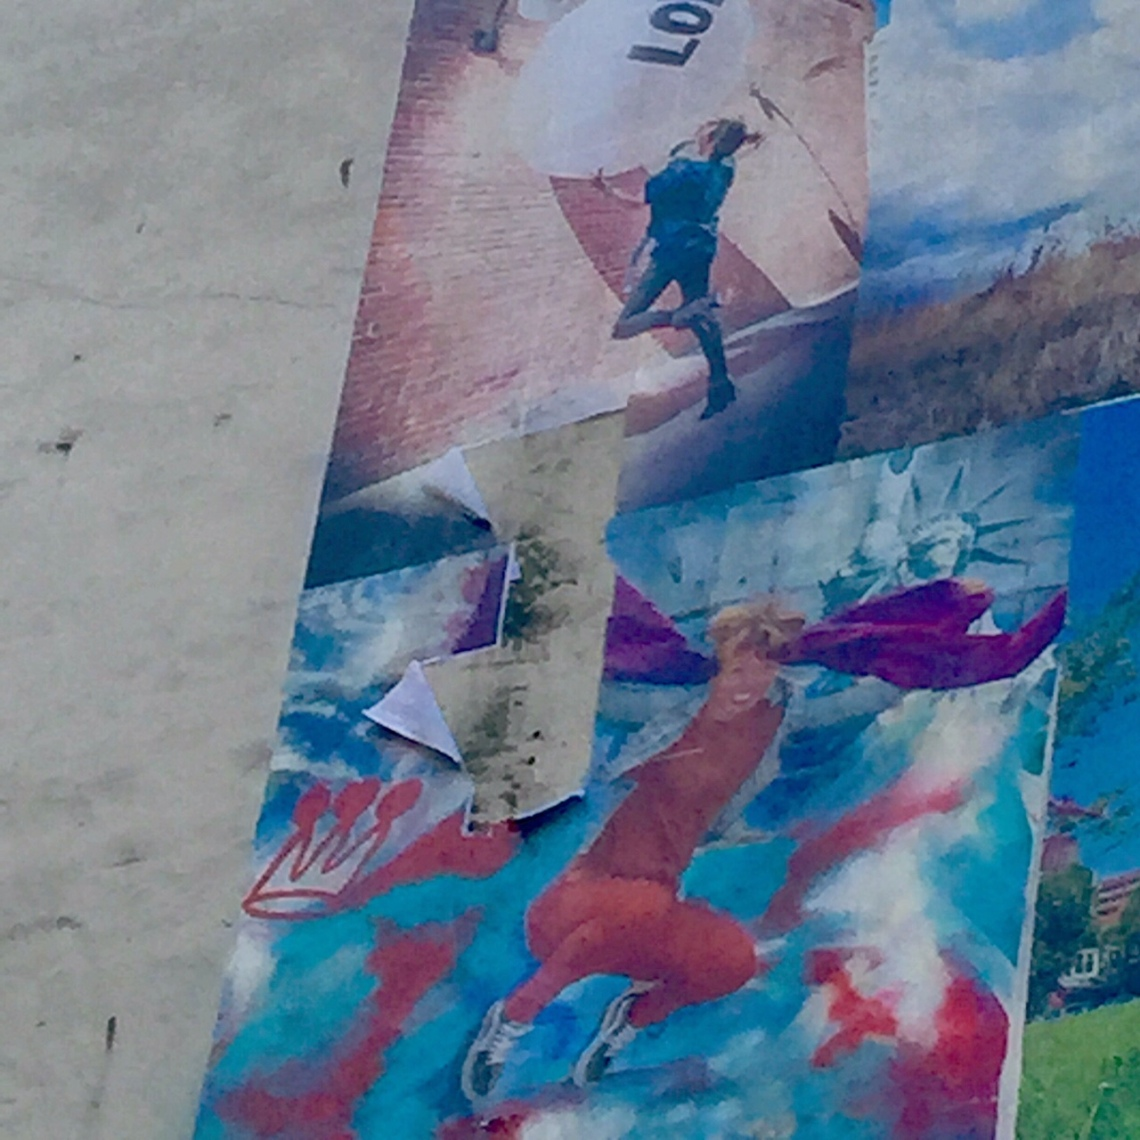 Photo damage to mural from the storm by Eyoälha Baker www.jumpforjoyphotoproject.com